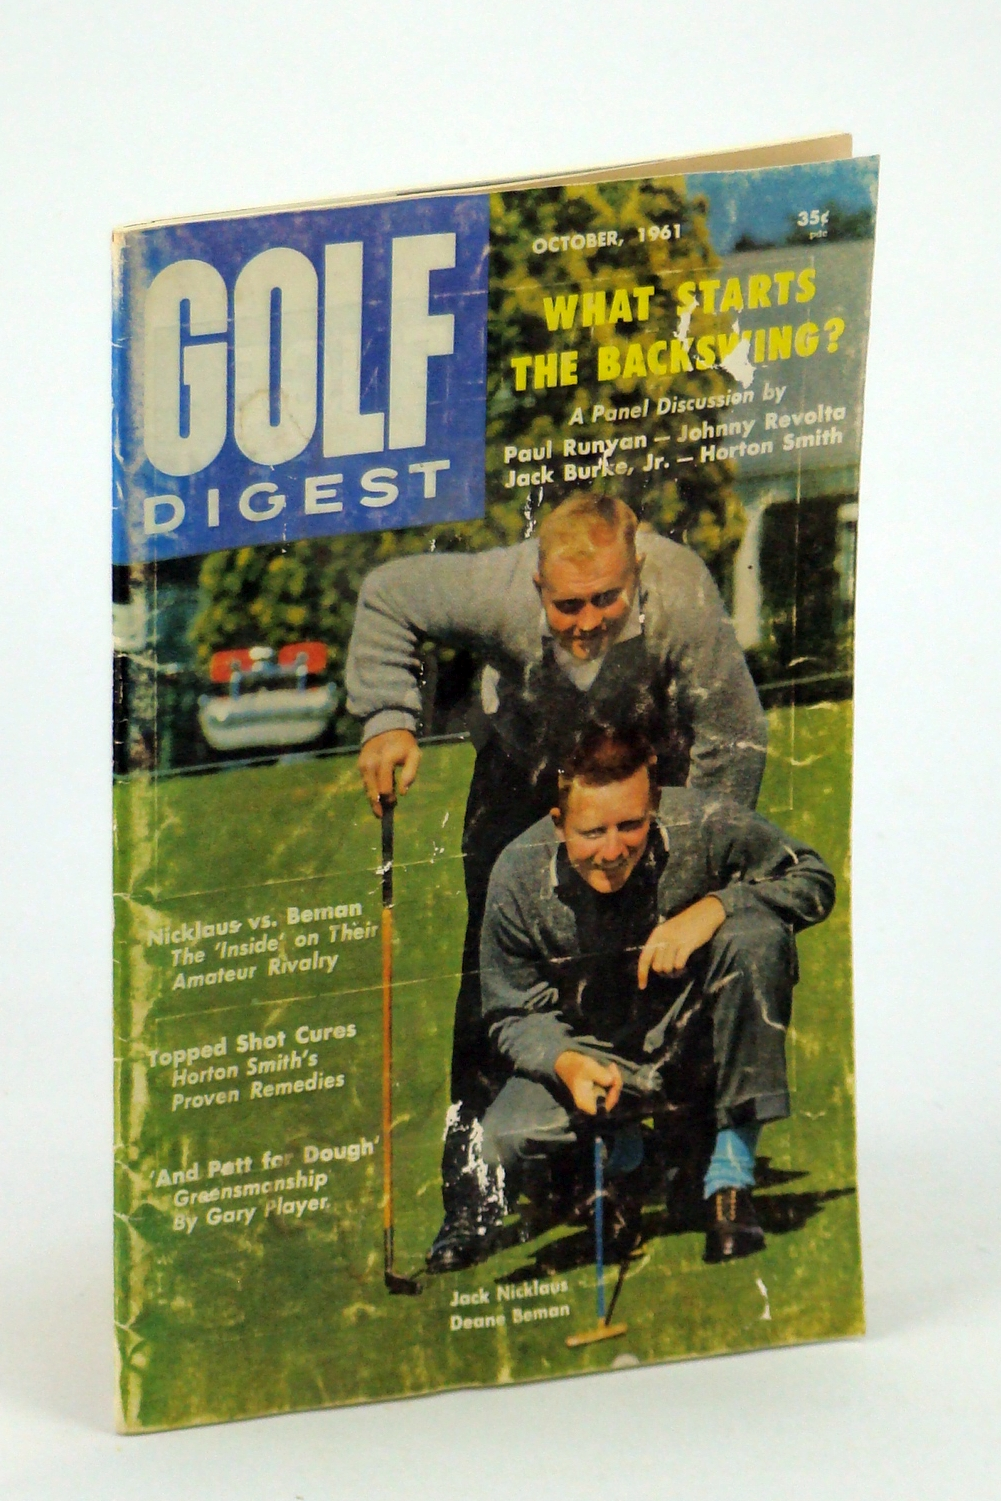 Image for Golf Digest - World's Largest Selling Golf Magazine, October [Oct.] 1961, Volume 12, No. 9 - Jack Nicklaus & Deane Beman Cover Photo